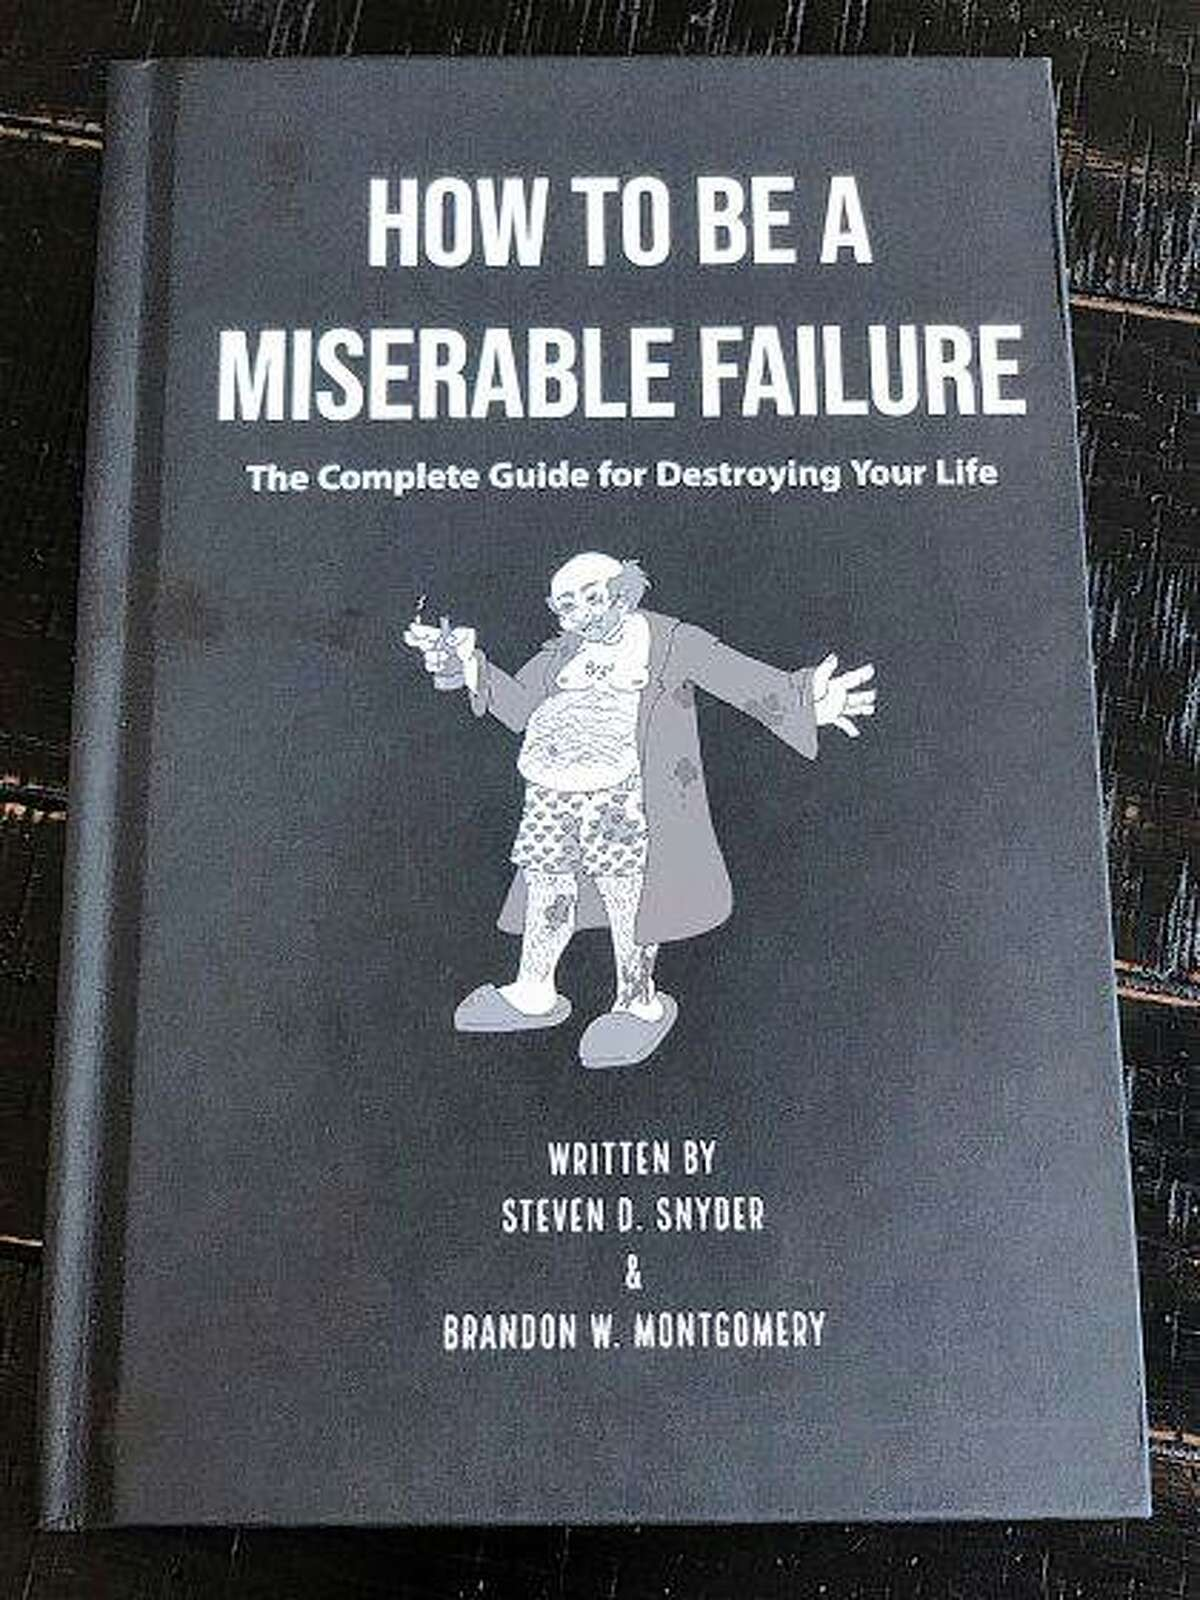 """""""How to Be a Miserable Failure"""" is Steven D. Snyder's attempt at offering up something to smile about as 2020 wraps up."""